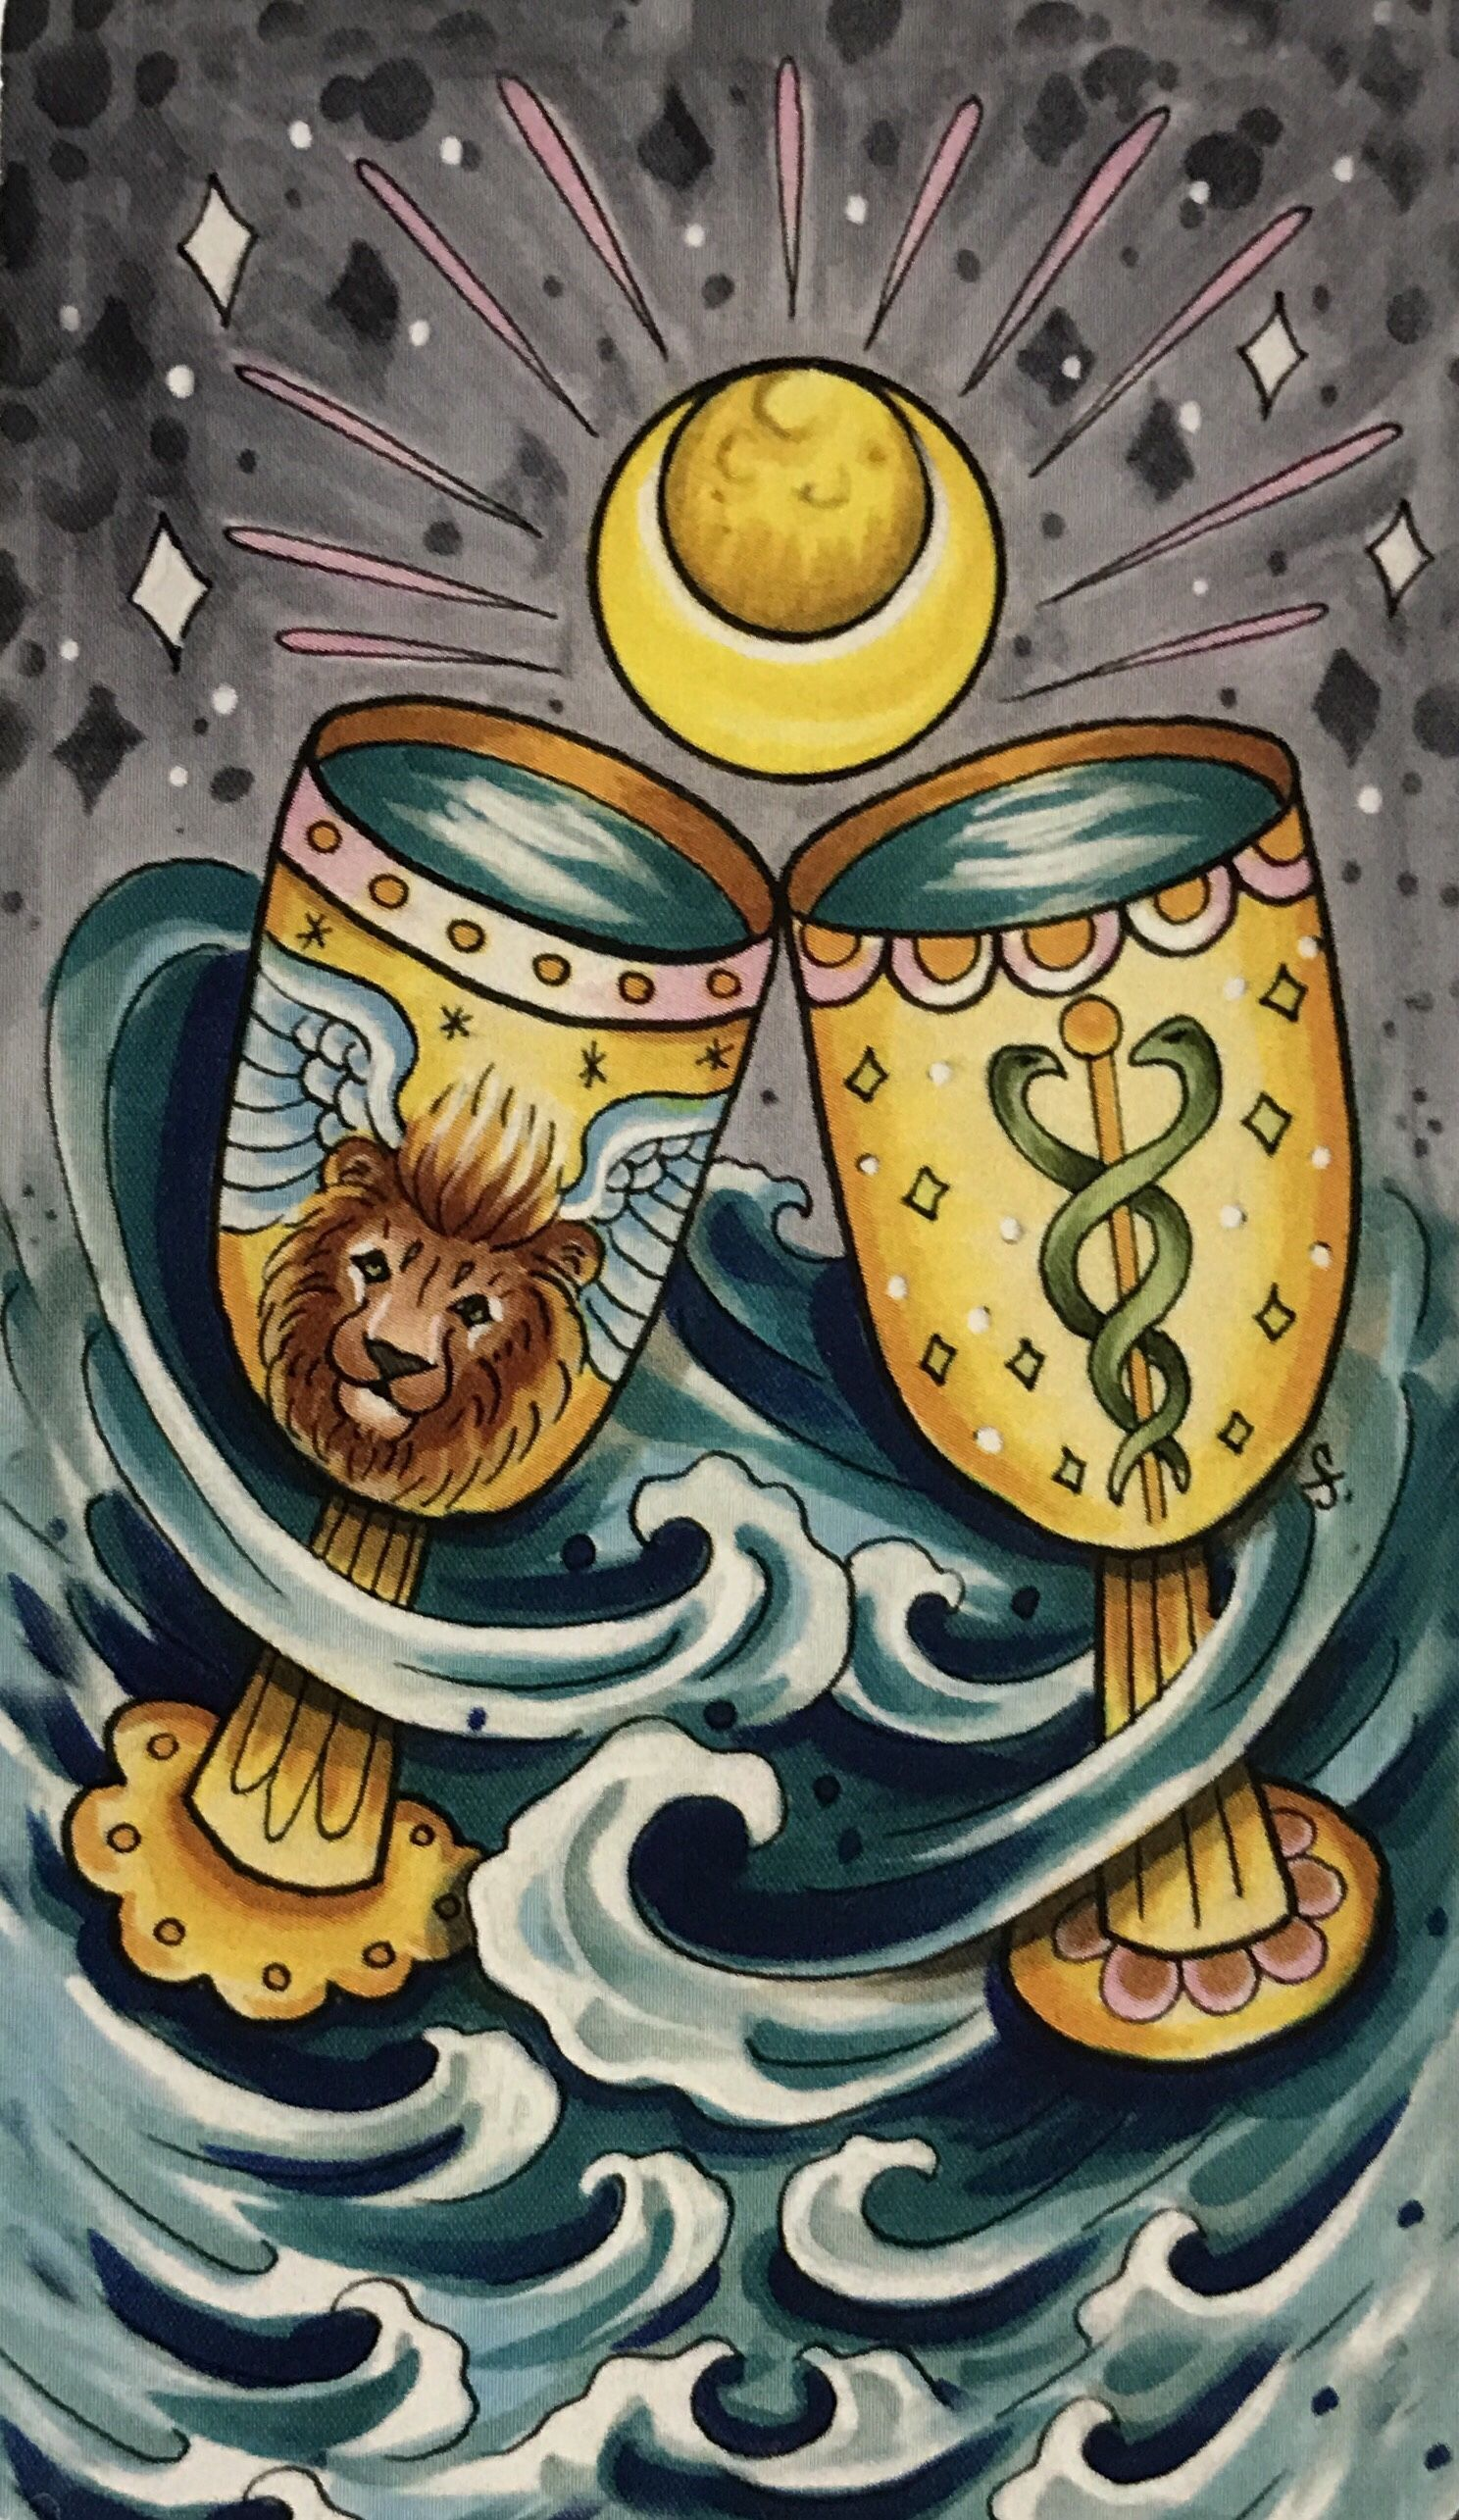 Card of the day 2 of cups tuesday january 29 2019